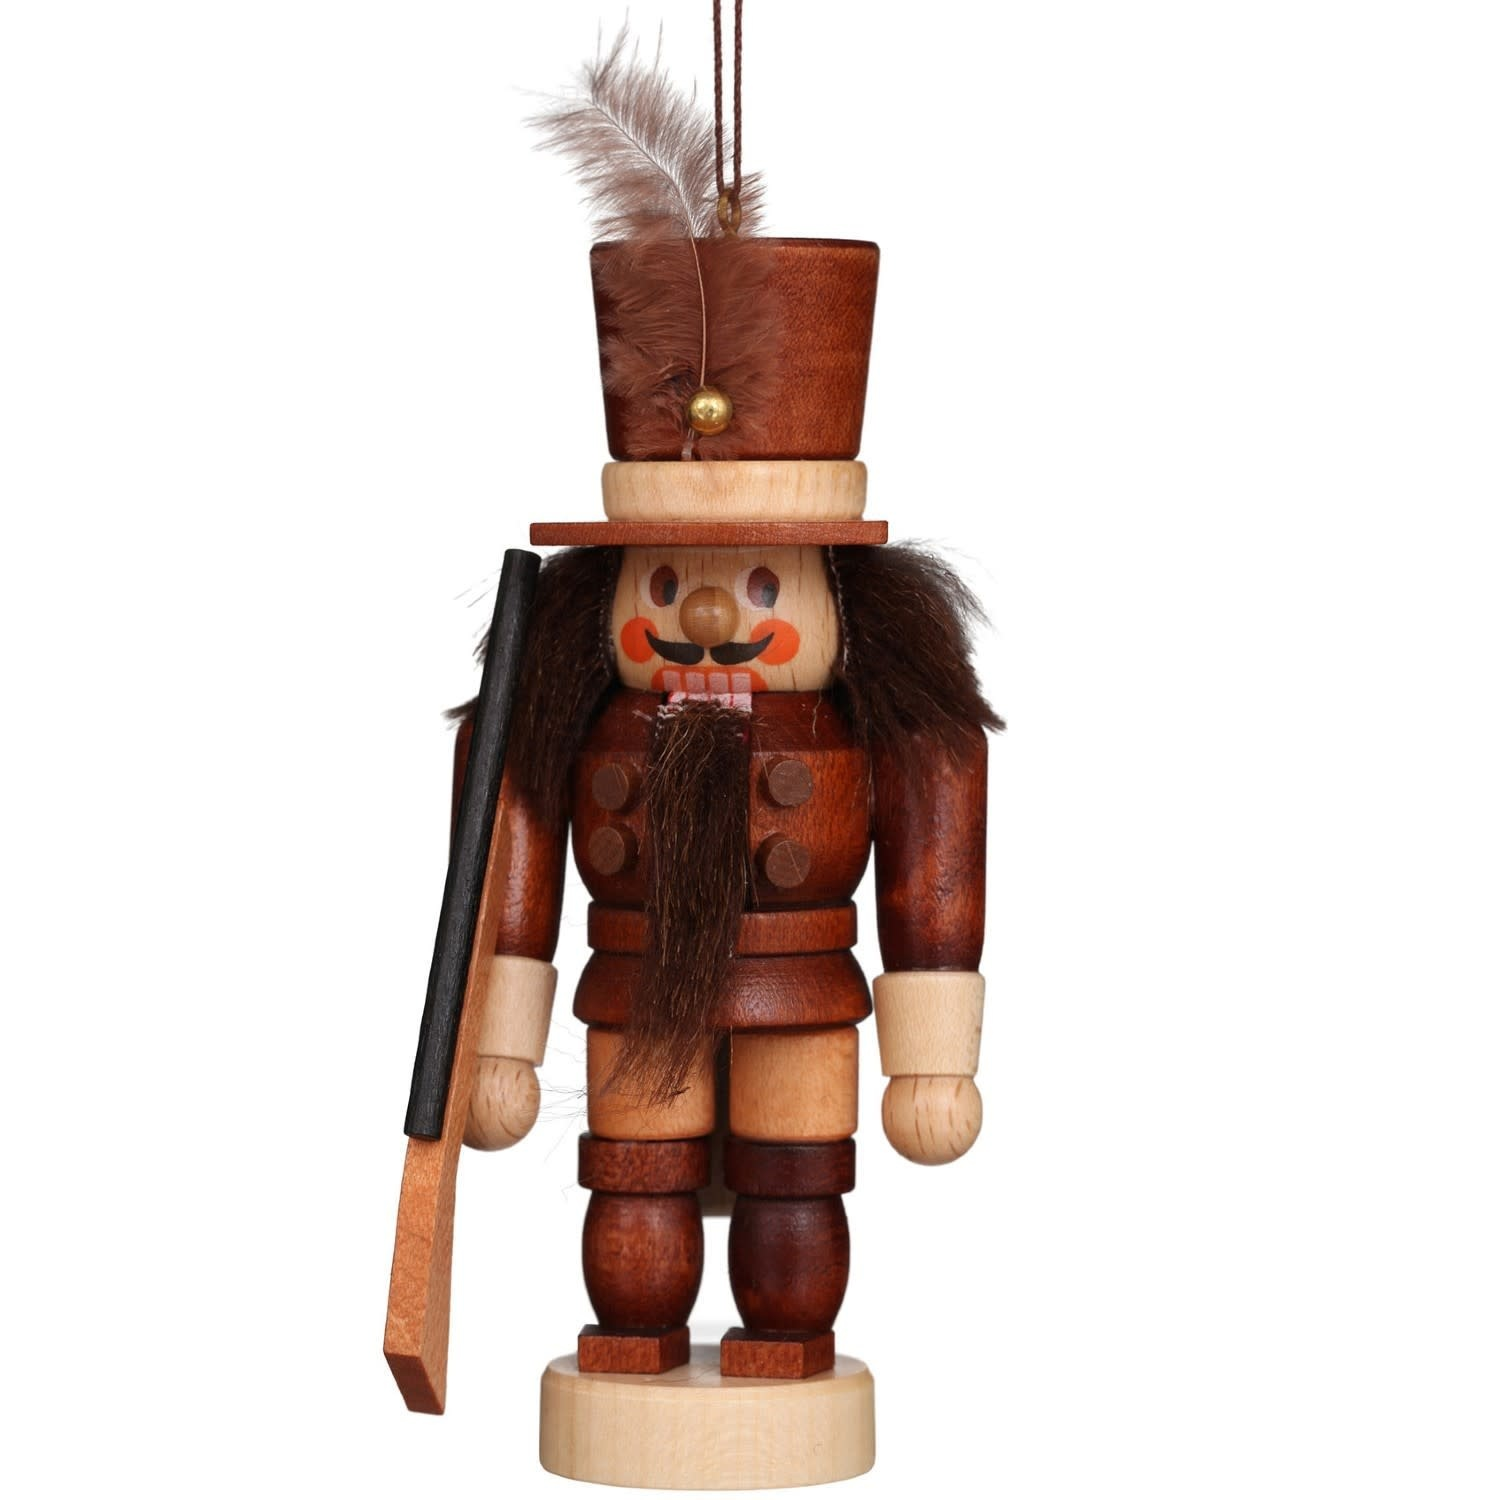 13-0601 Soldier Ornament (Natural)